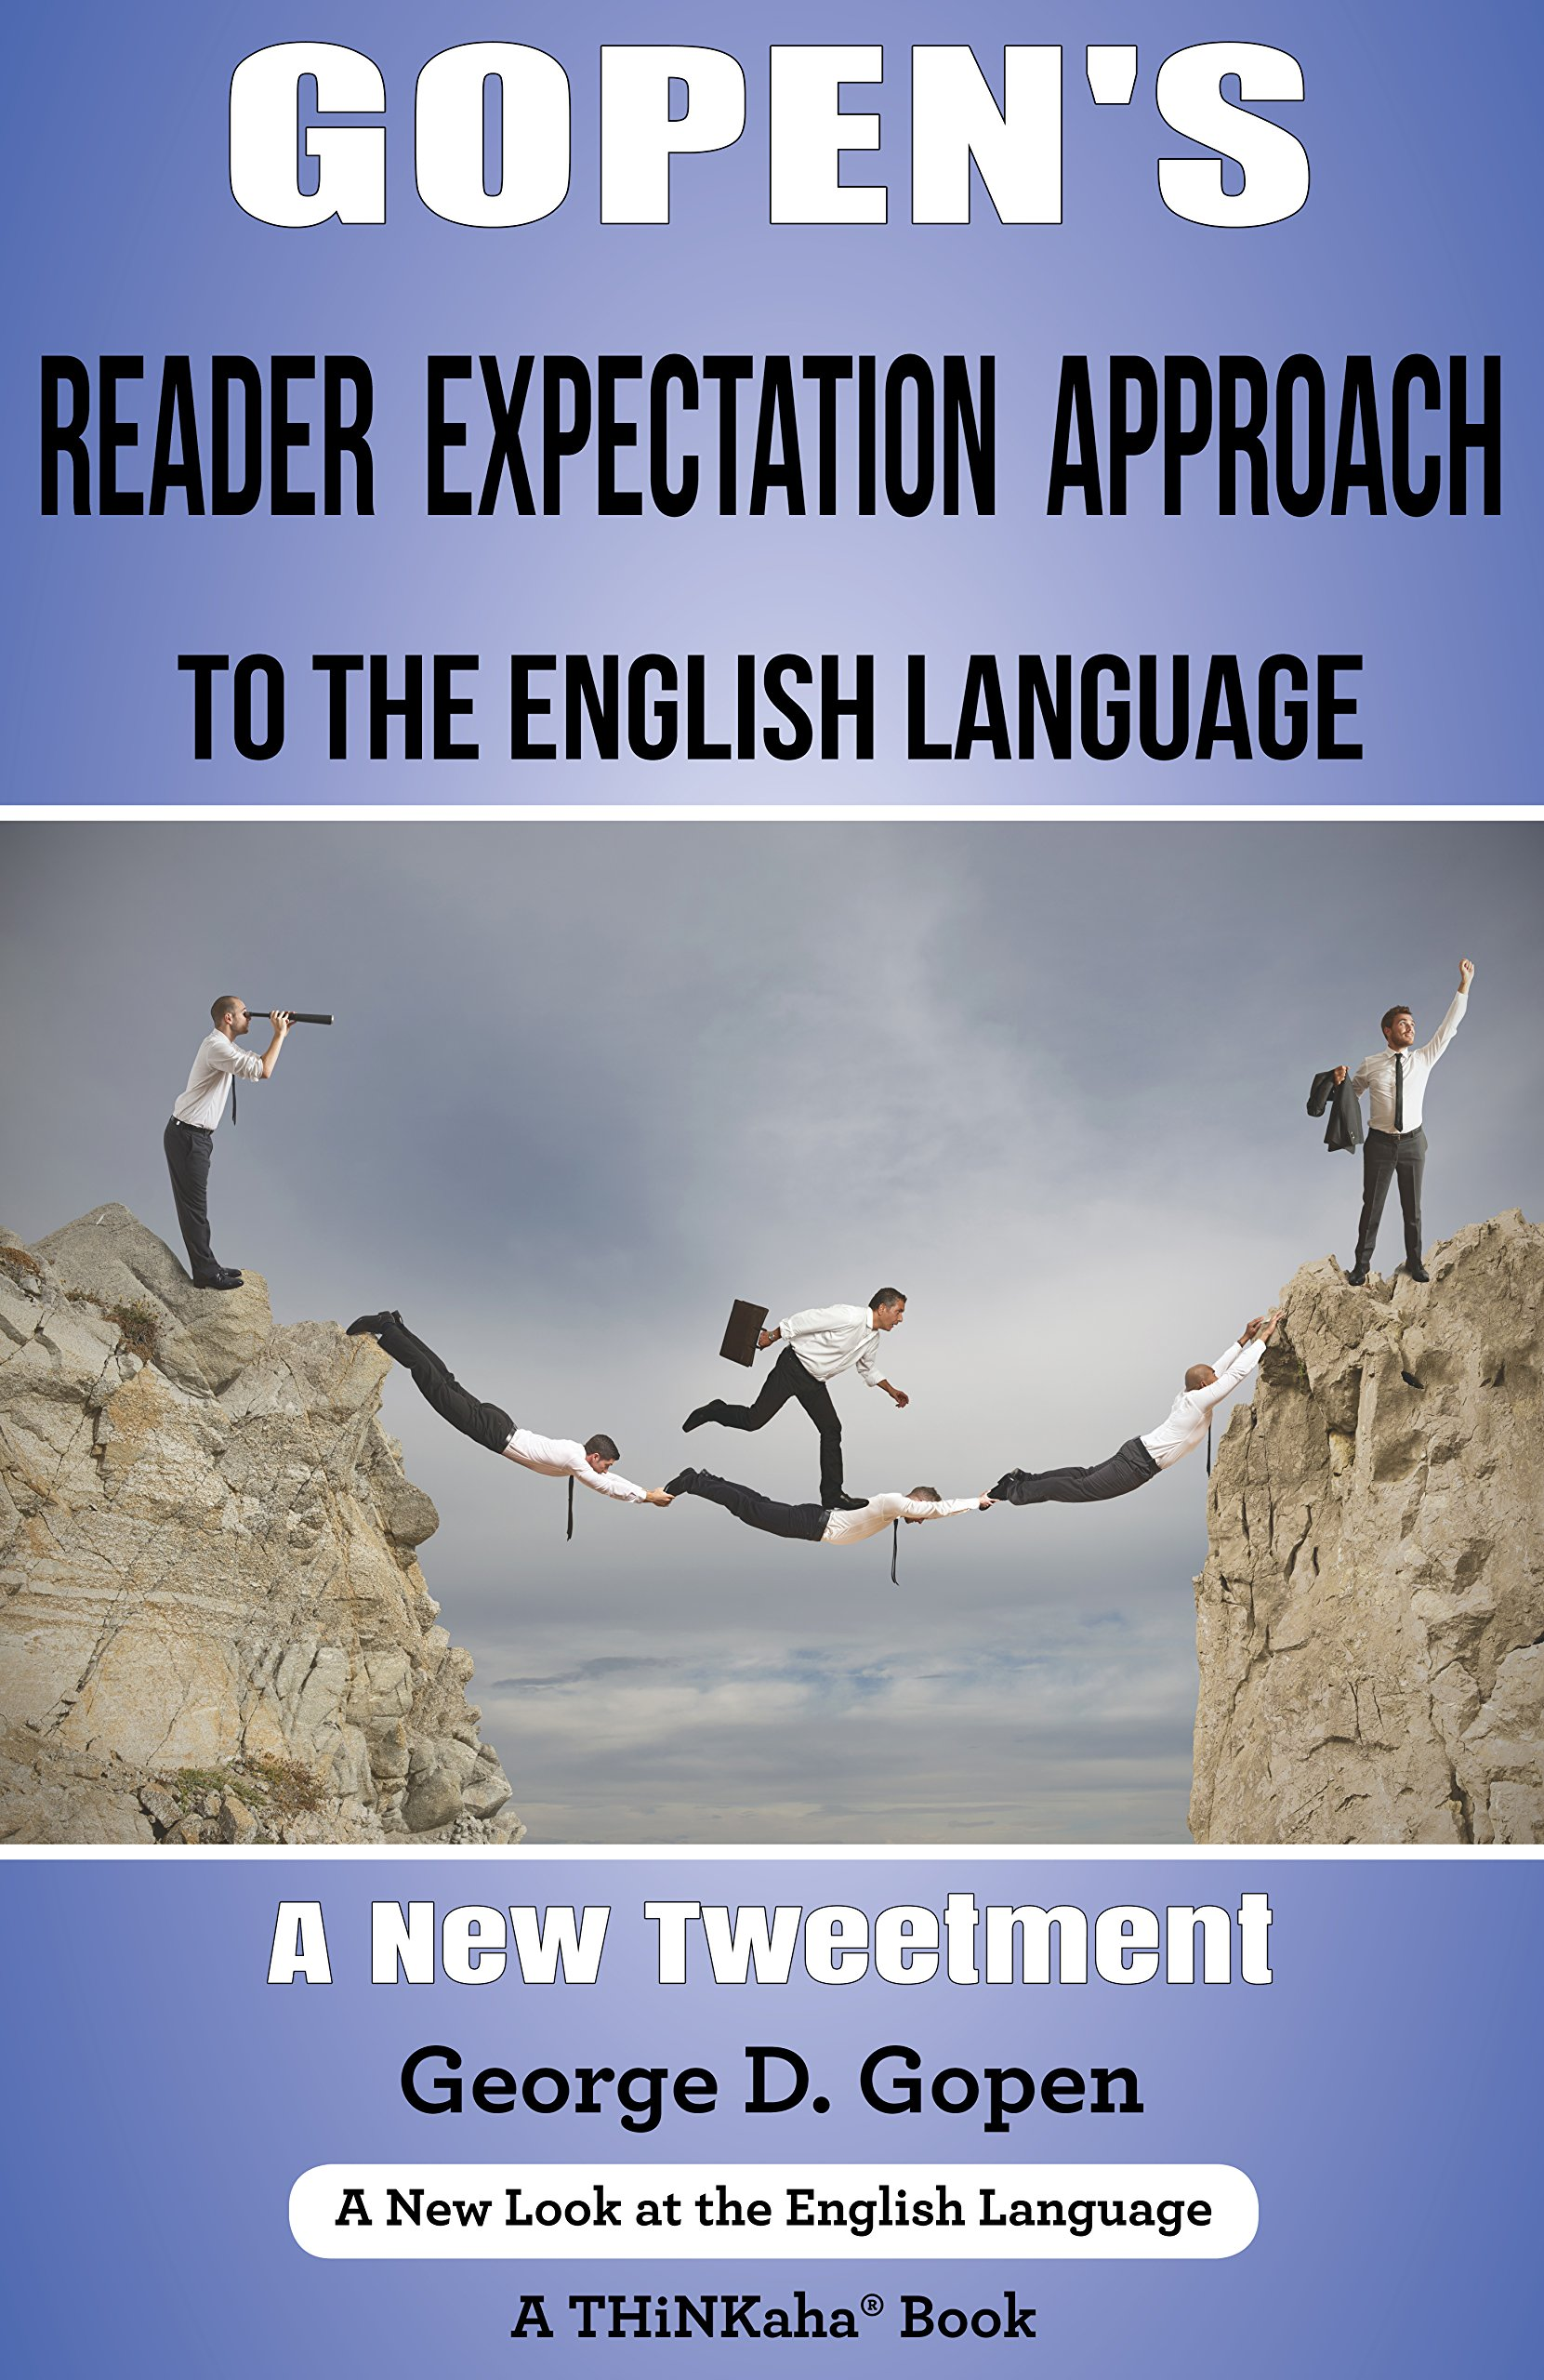 Gopen's Reader Expectation Approach to the English Language: A New Tweetment (English Edition)